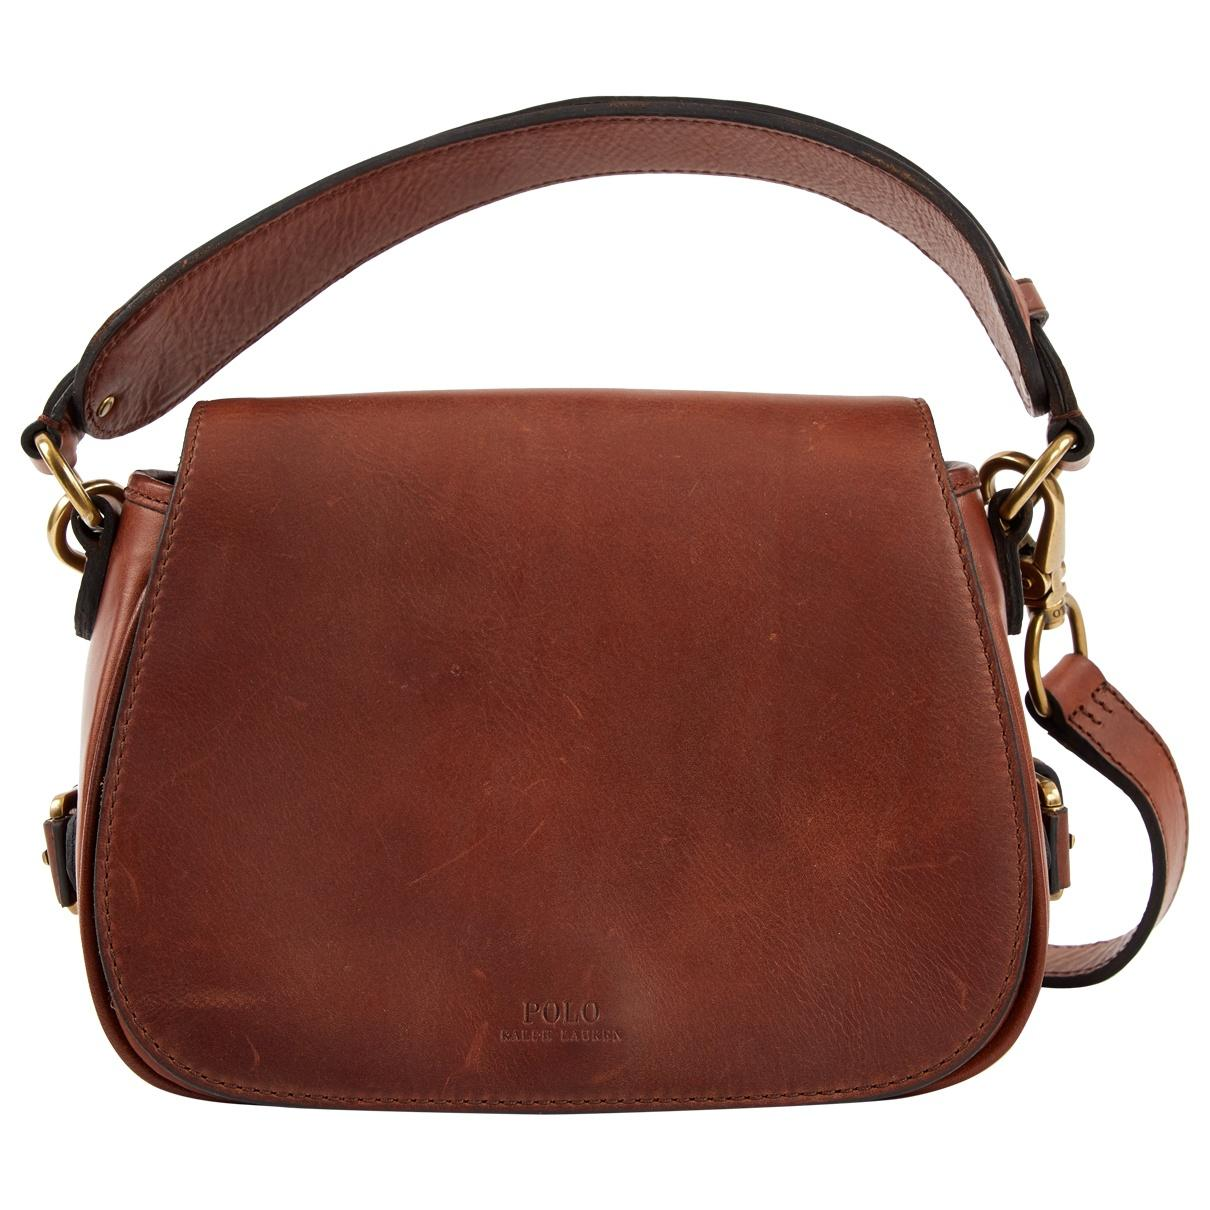 a2626981a5 Polo Ralph Lauren Brown Leather Handbag in Brown - Lyst